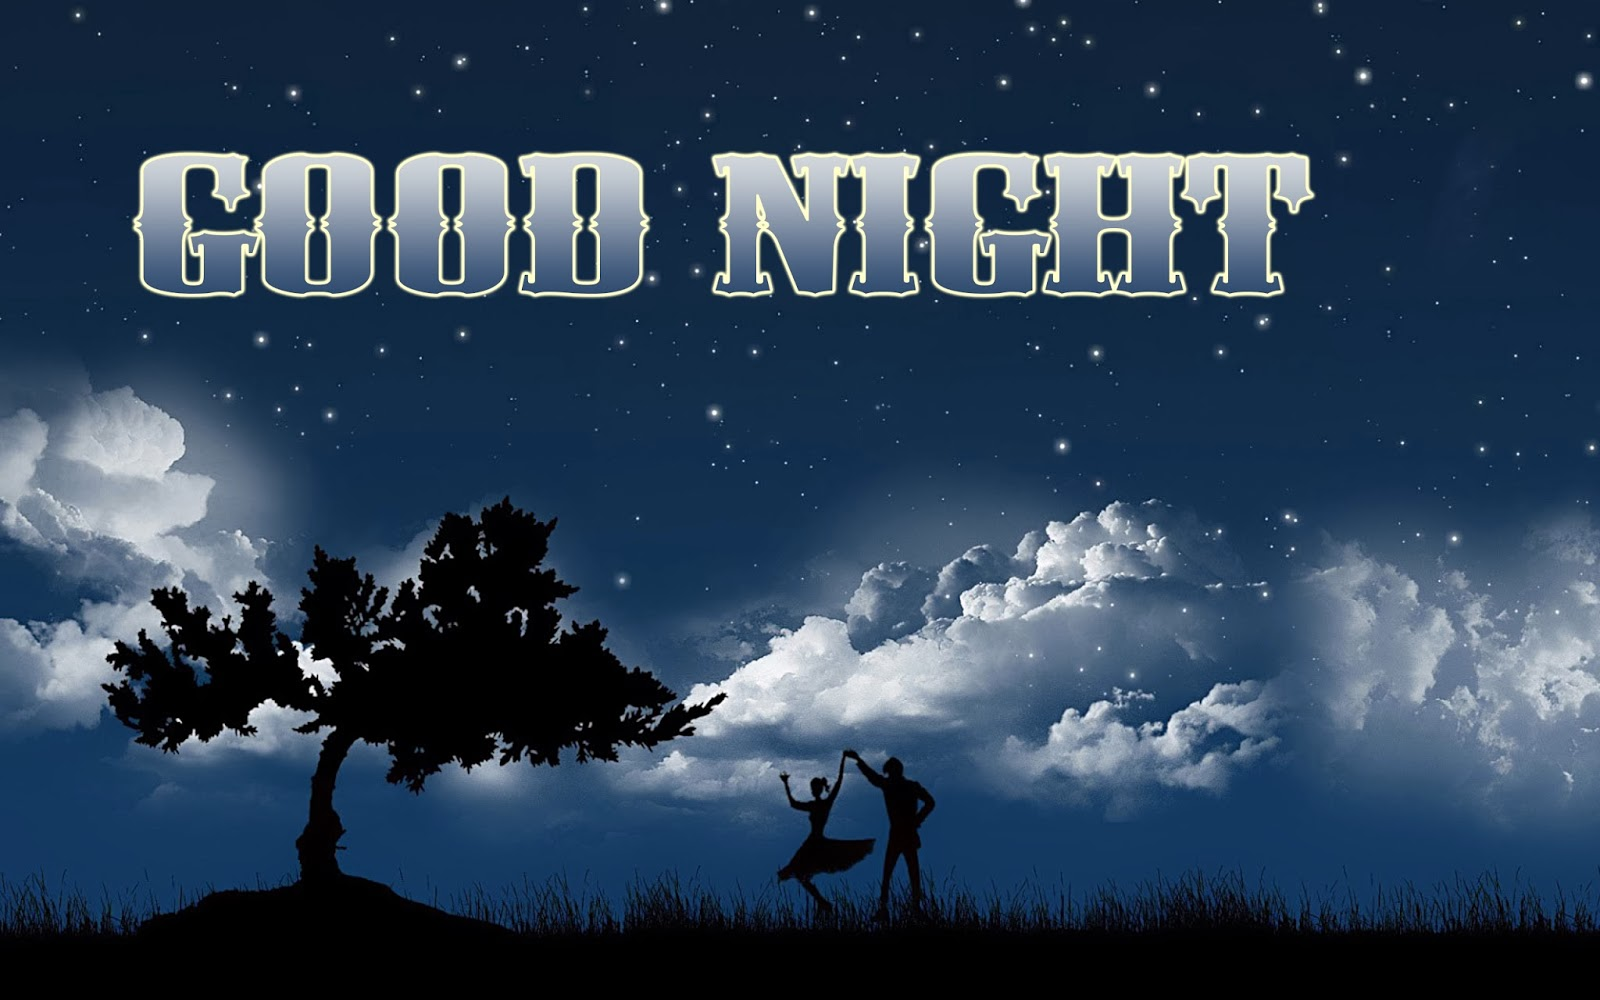 Good-Night-Wishes-Image-HD-Wide